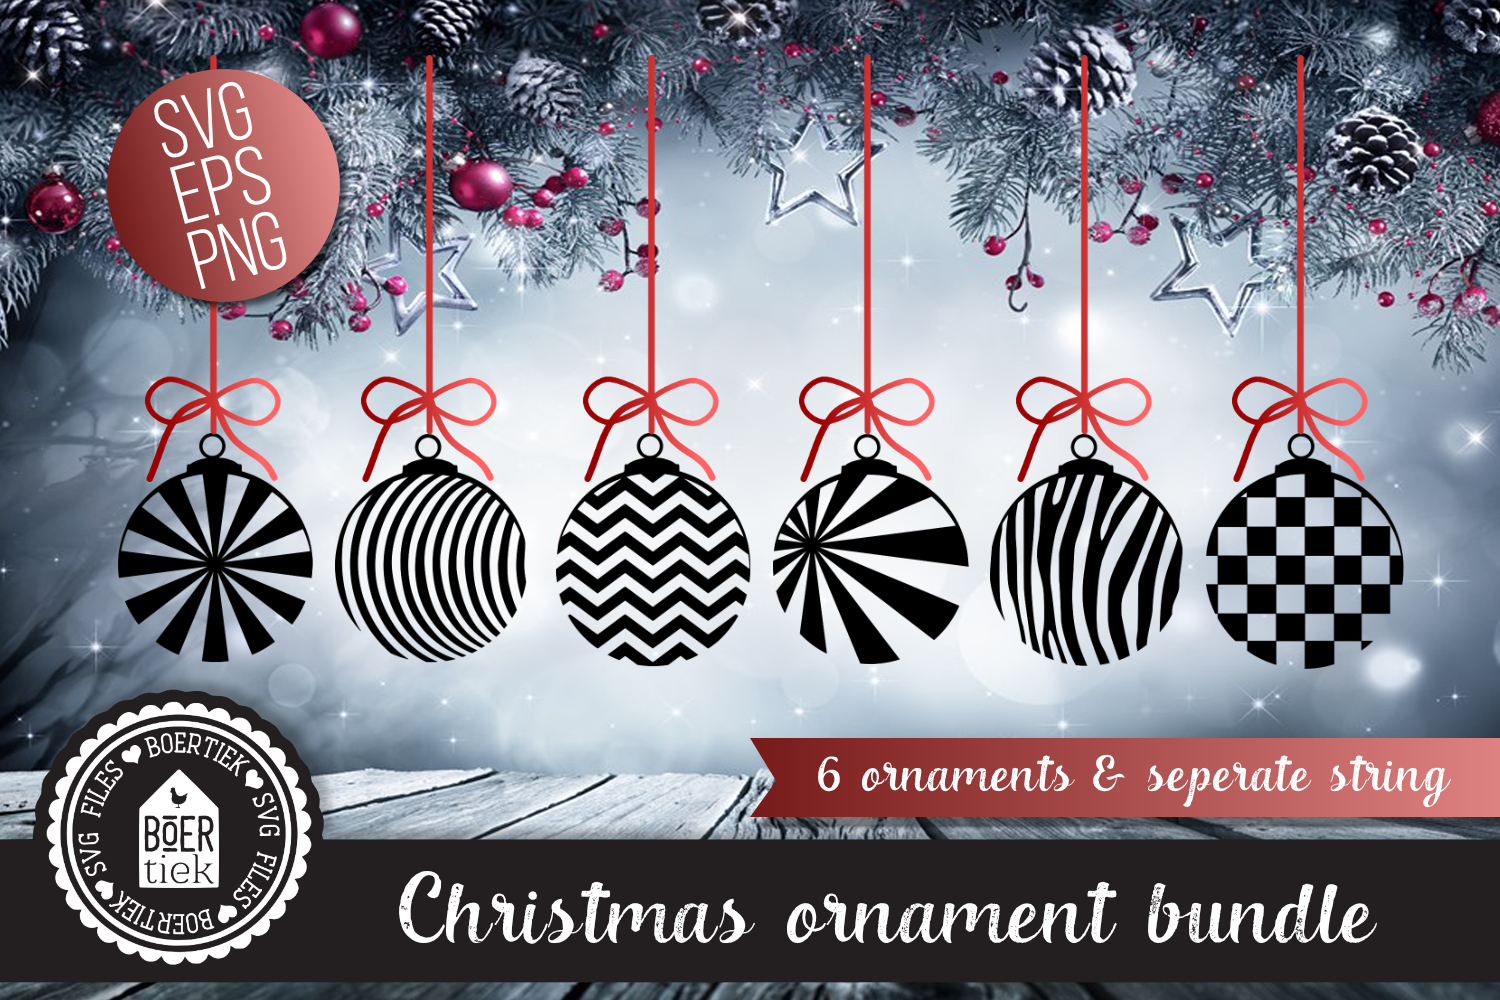 Download Free Christmas Ornament Bundle Graphic By Boertiek Creative Fabrica for Cricut Explore, Silhouette and other cutting machines.